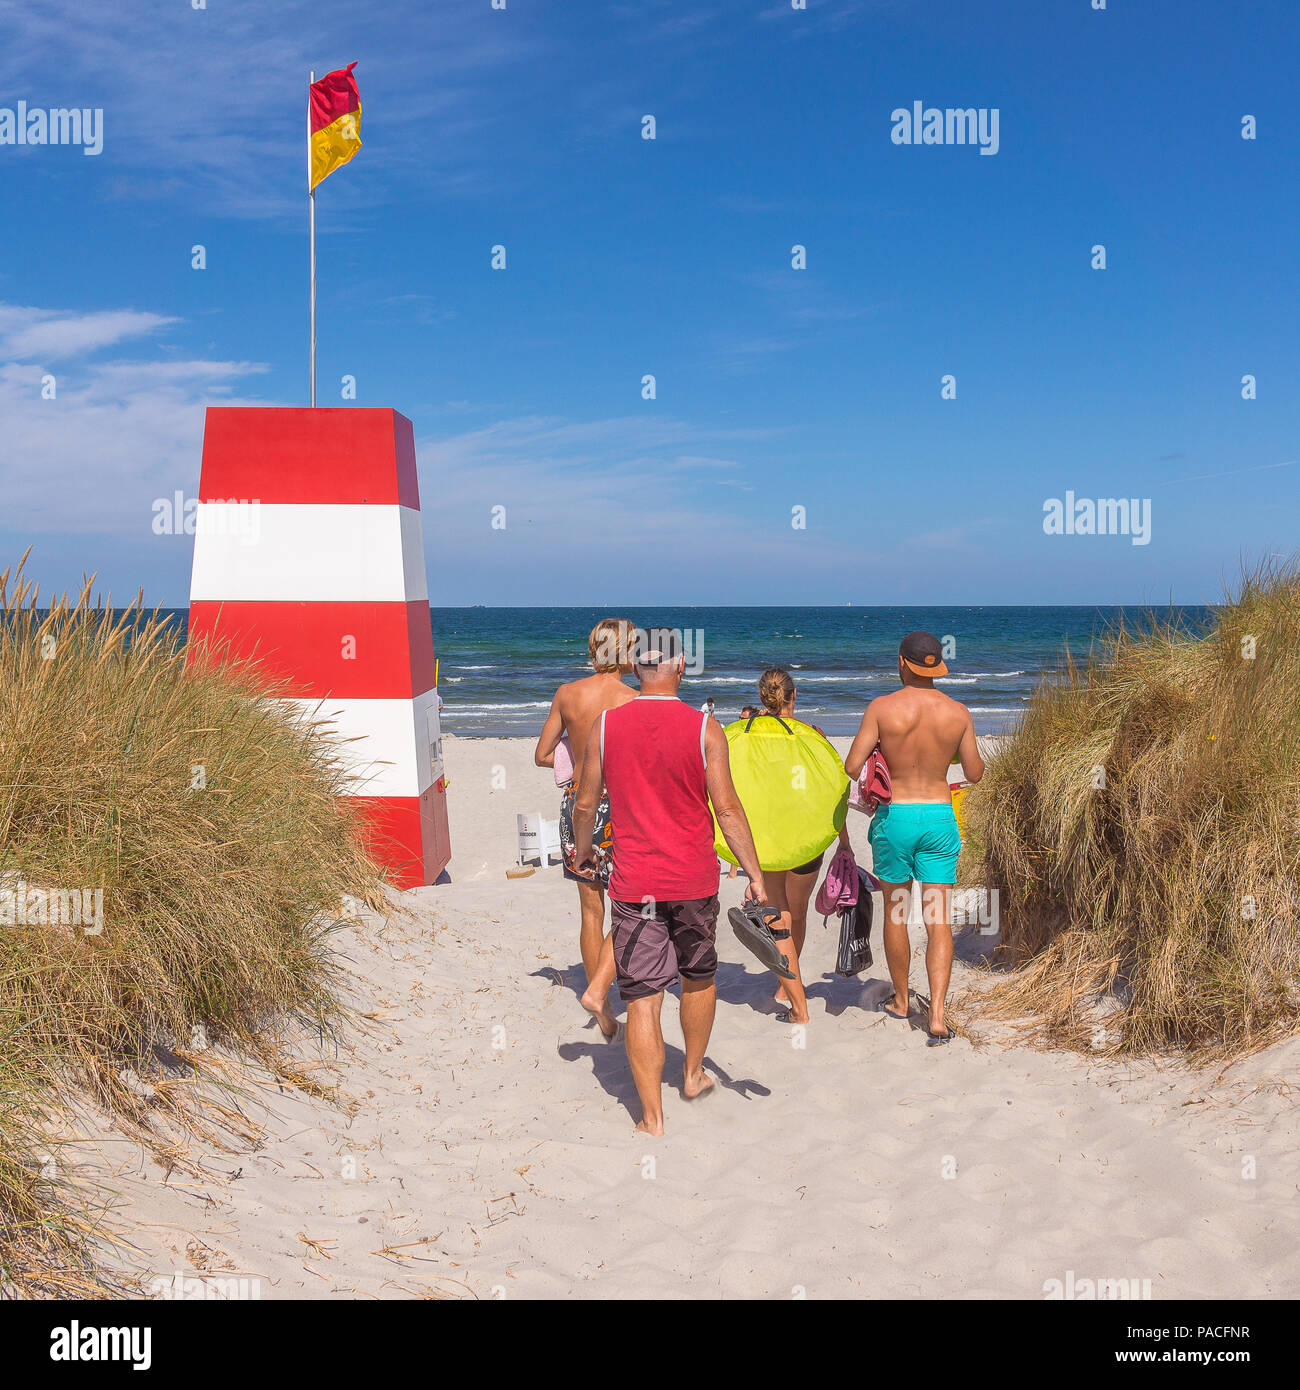 people walking in the sand towards the sea and a red an white rescuing tower, Rorvig, Denmark, July 20, 2018 - Stock Image